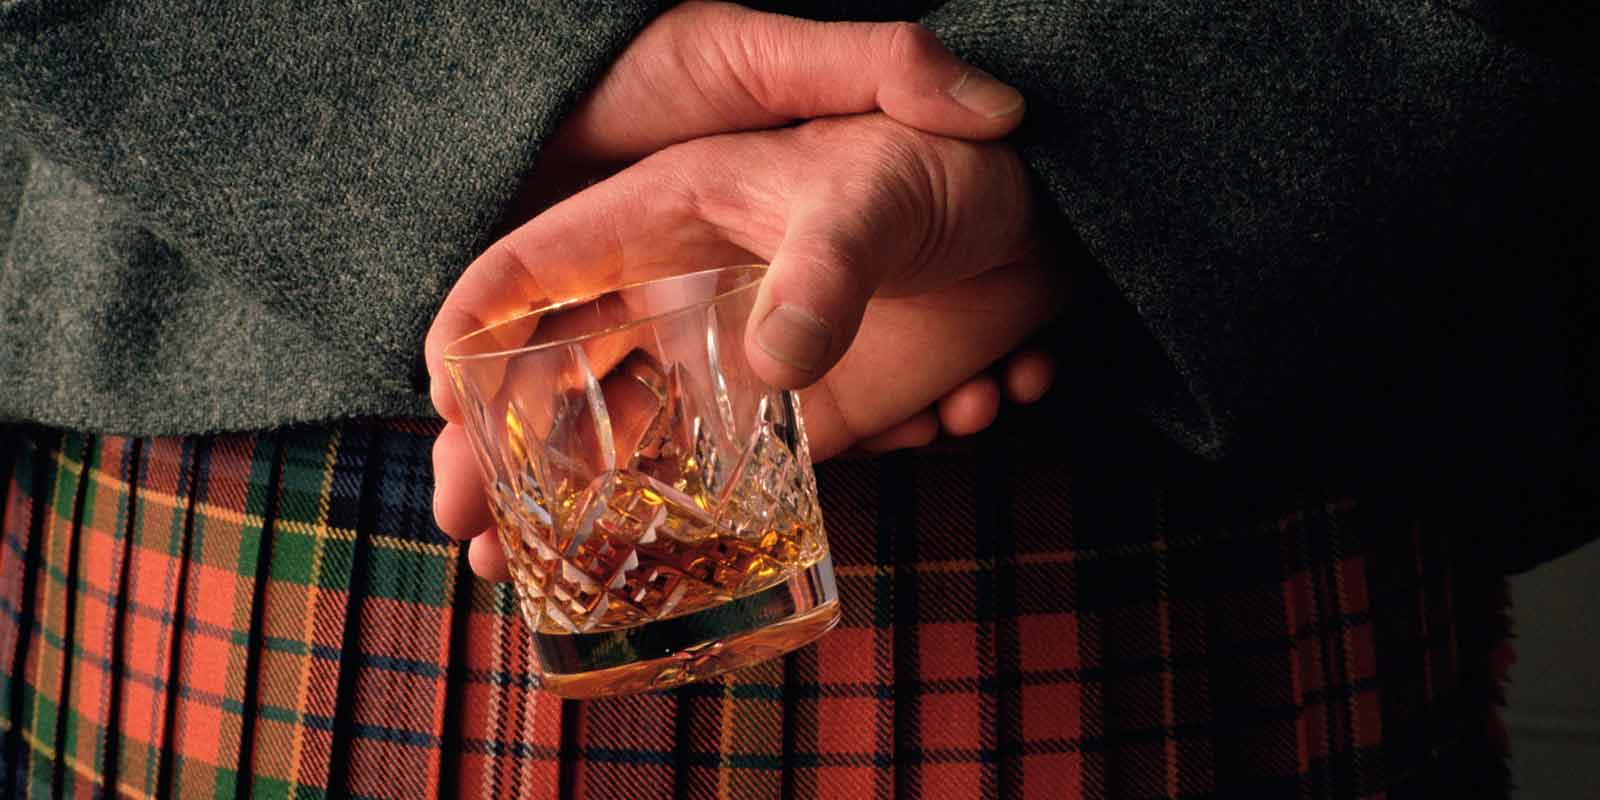 Whisky_Glass_1600x800.jpg